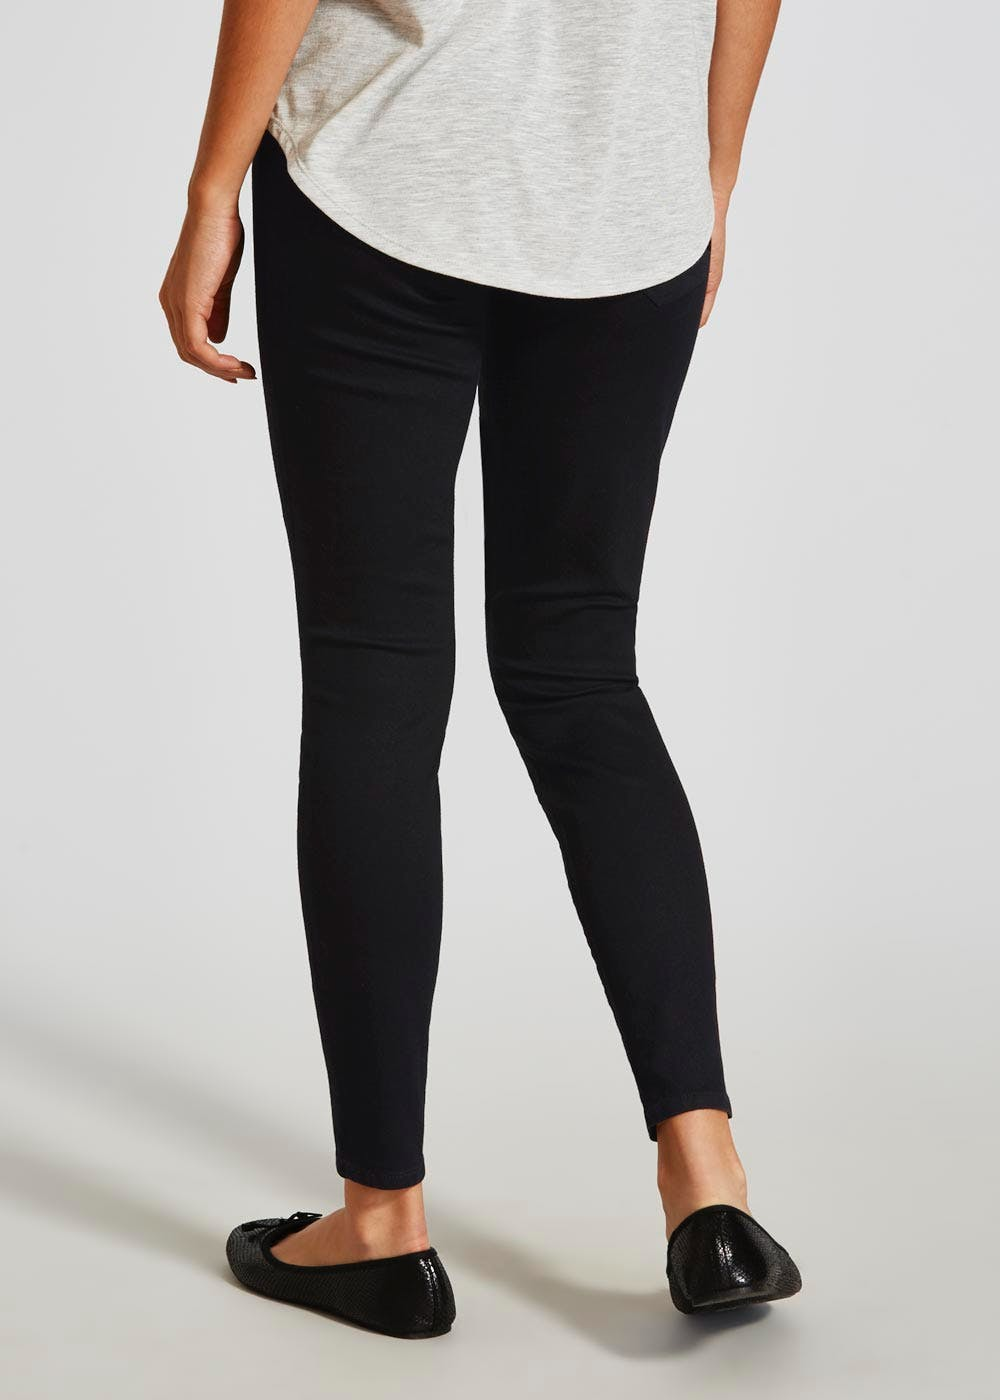 Womens Motherhood Maternity Jeggings Pants Size XS Black Wash. $ 0 bids. Purchased from motherhood maternity. Size XS. Refer to the first picture for actual wash and color (hard to photograph). Please review all pictures and ask questions! Items will ship once payments has Liz Lange Maternity Khaki Jeggings. $